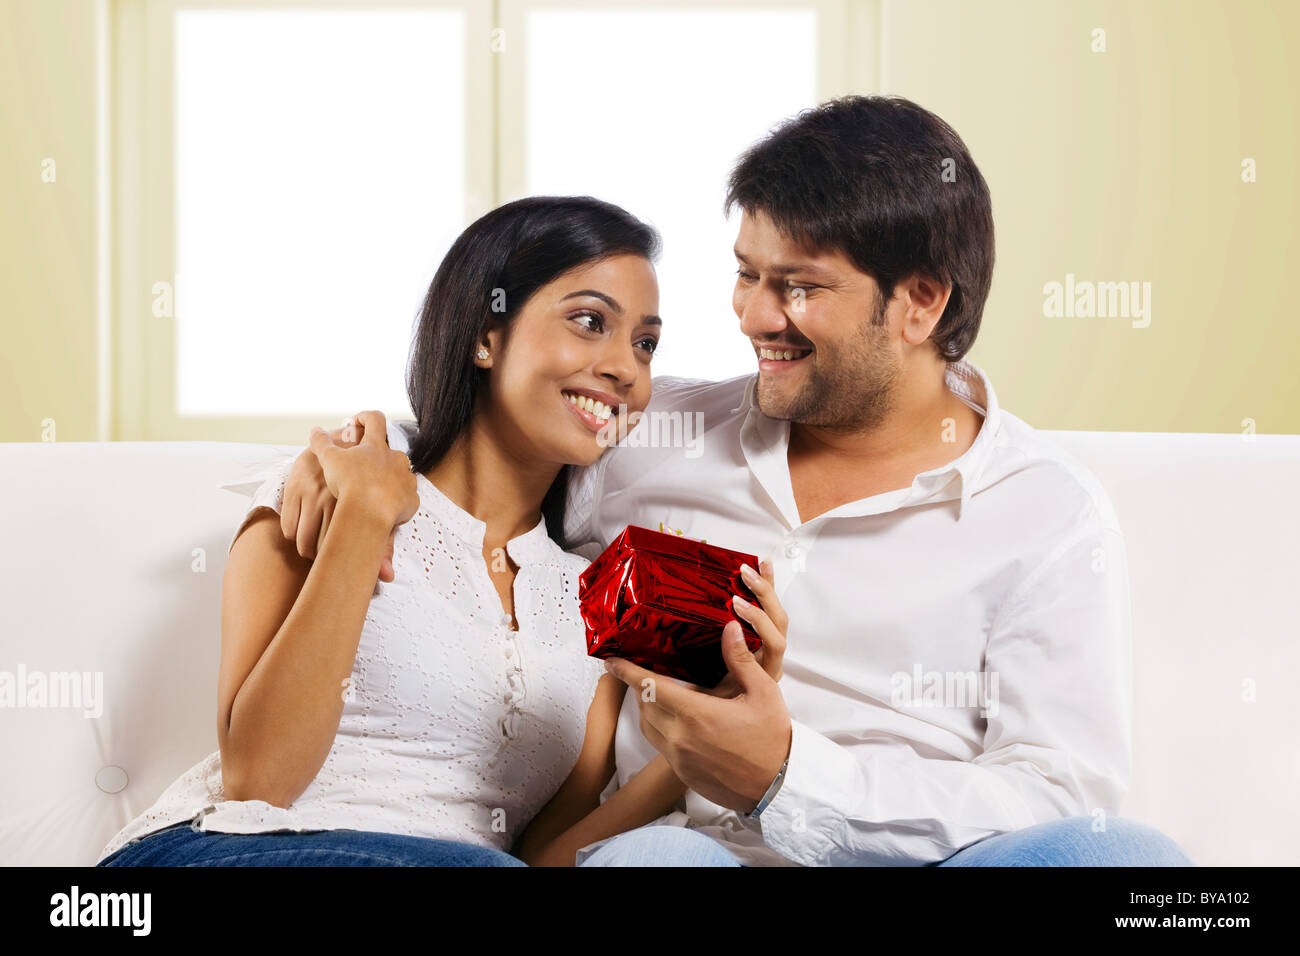 Indian House Wife Stock Photos & Indian House Wife Stock